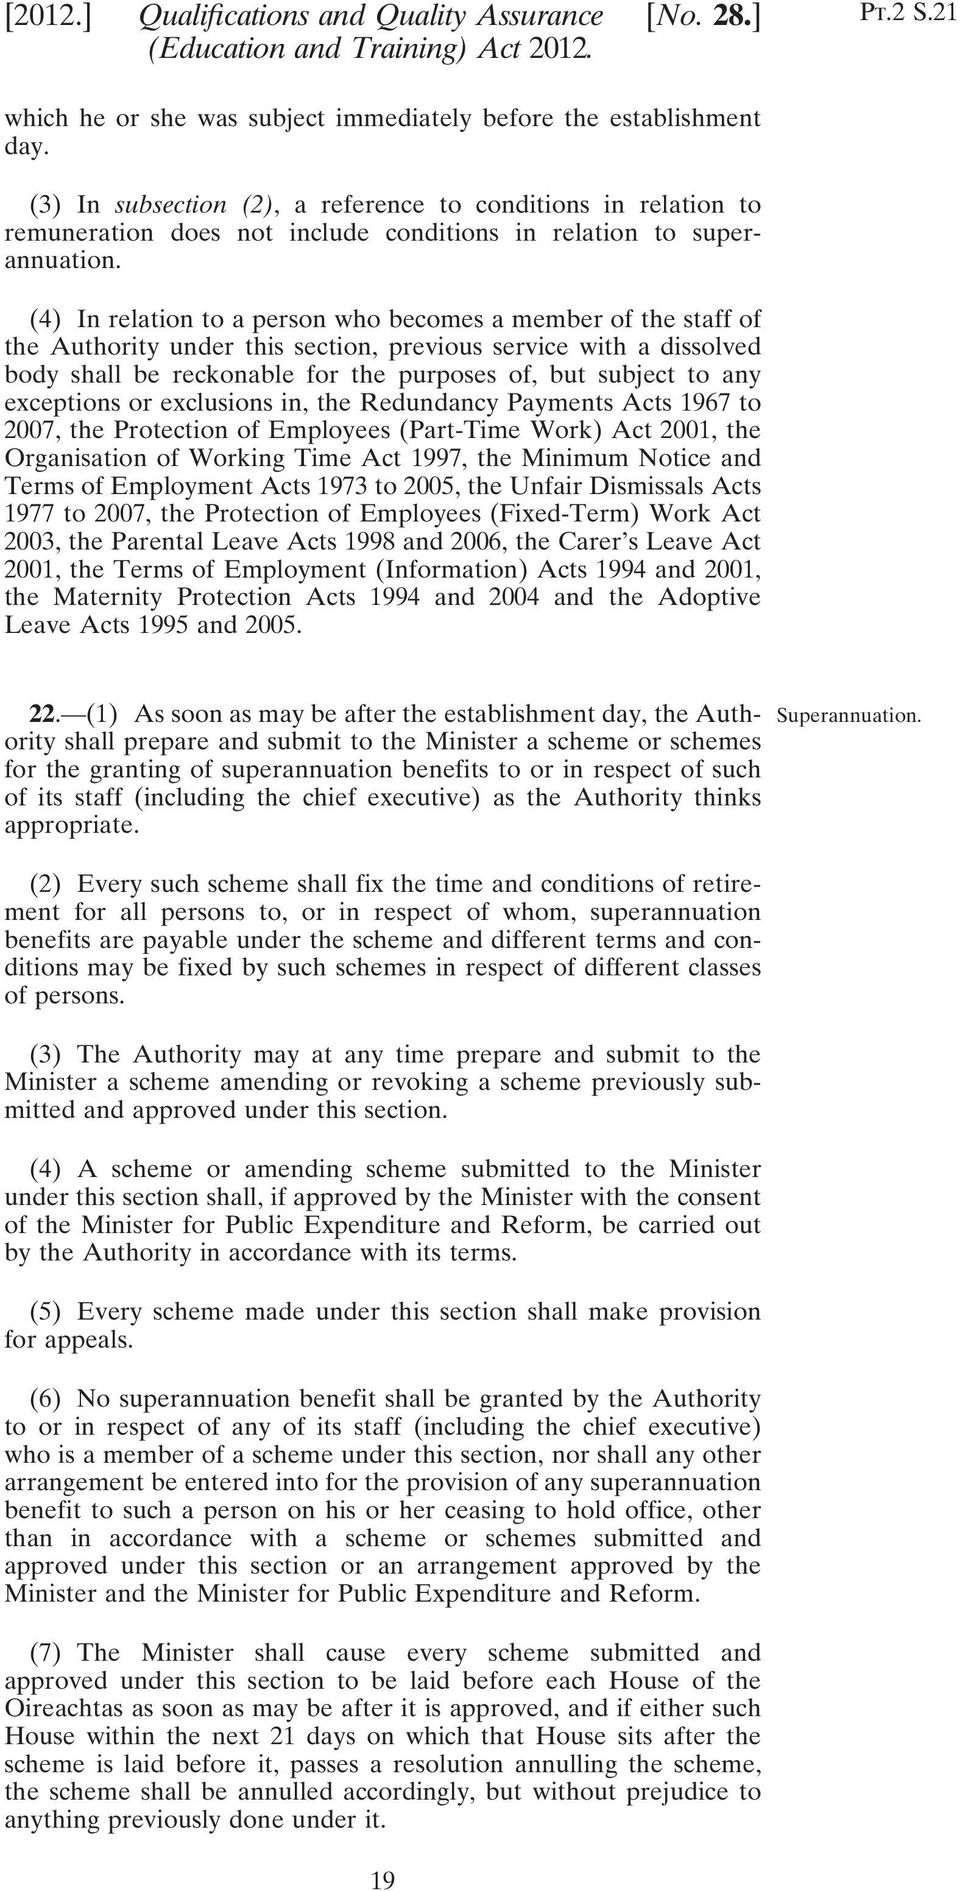 (4) In relation to a person who becomes a member of the staff of the Authority under this section, previous service with a dissolved body shall be reckonable for the purposes of, but subject to any